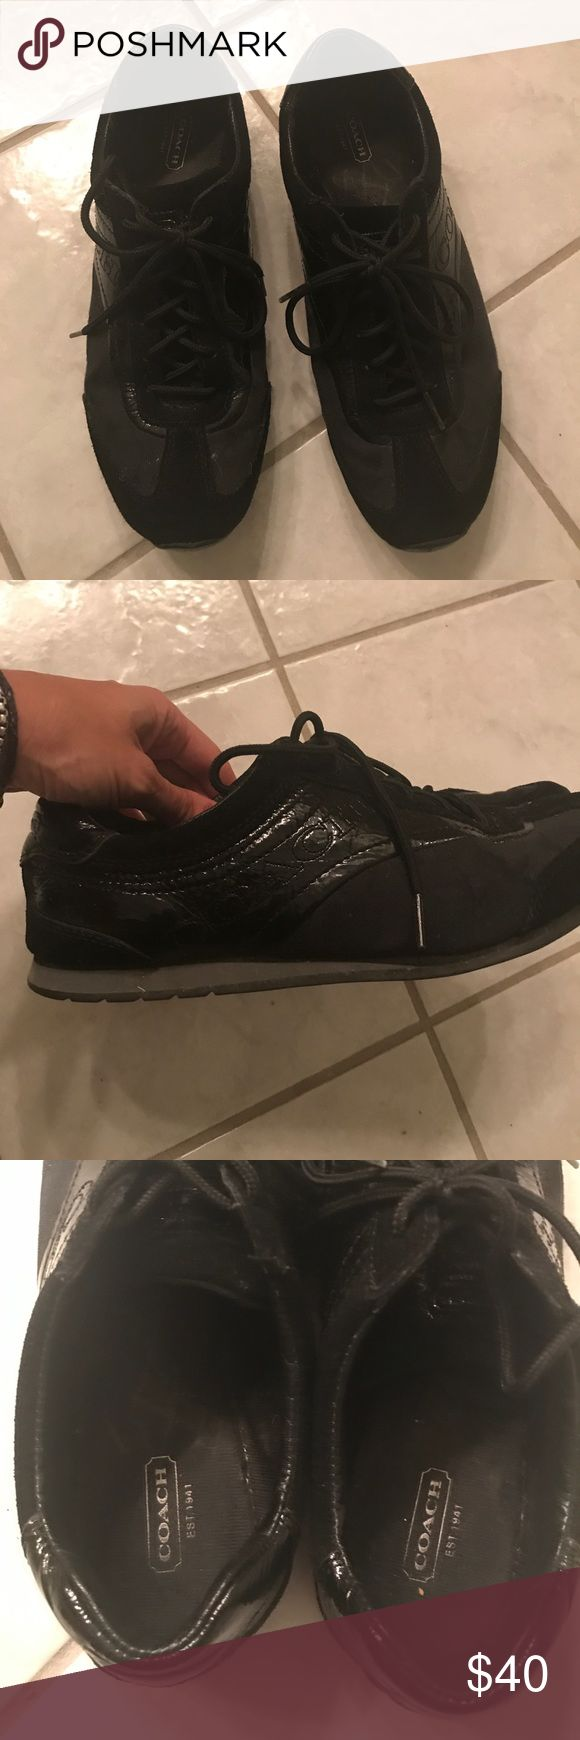 Coach tennis shoes Used, but in pretty good condition. Only noticeable wear is inner soles are a bit detached, but on. Price is firm. Coach Shoes Sneakers